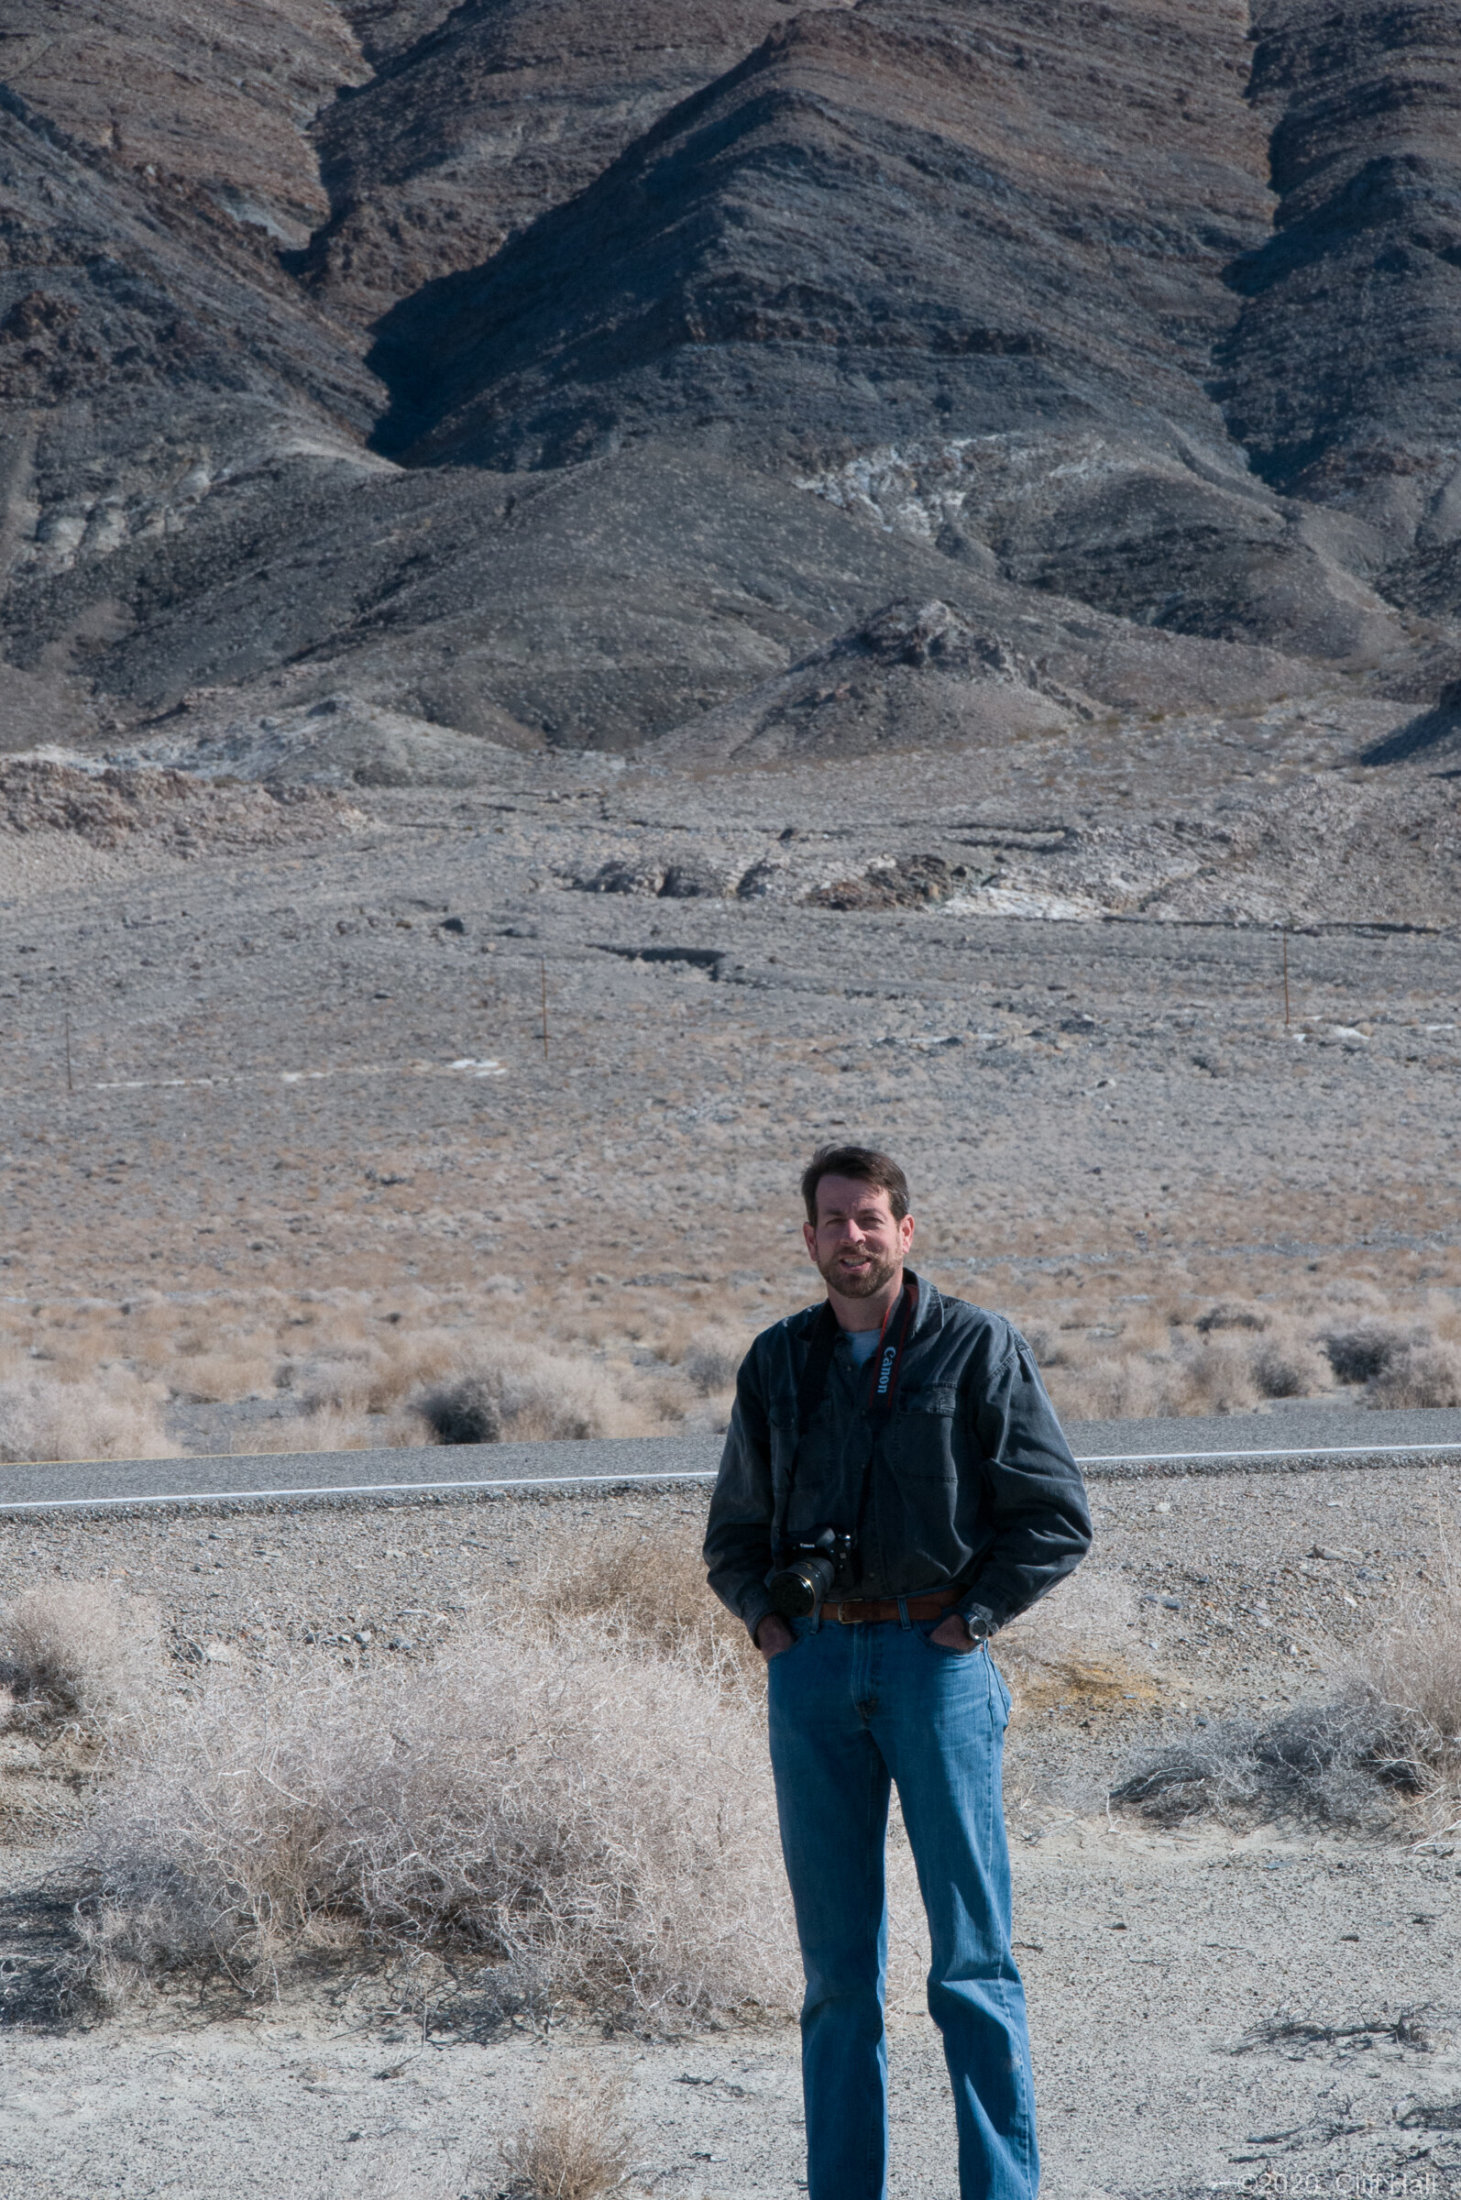 Steve on road to Death Valley